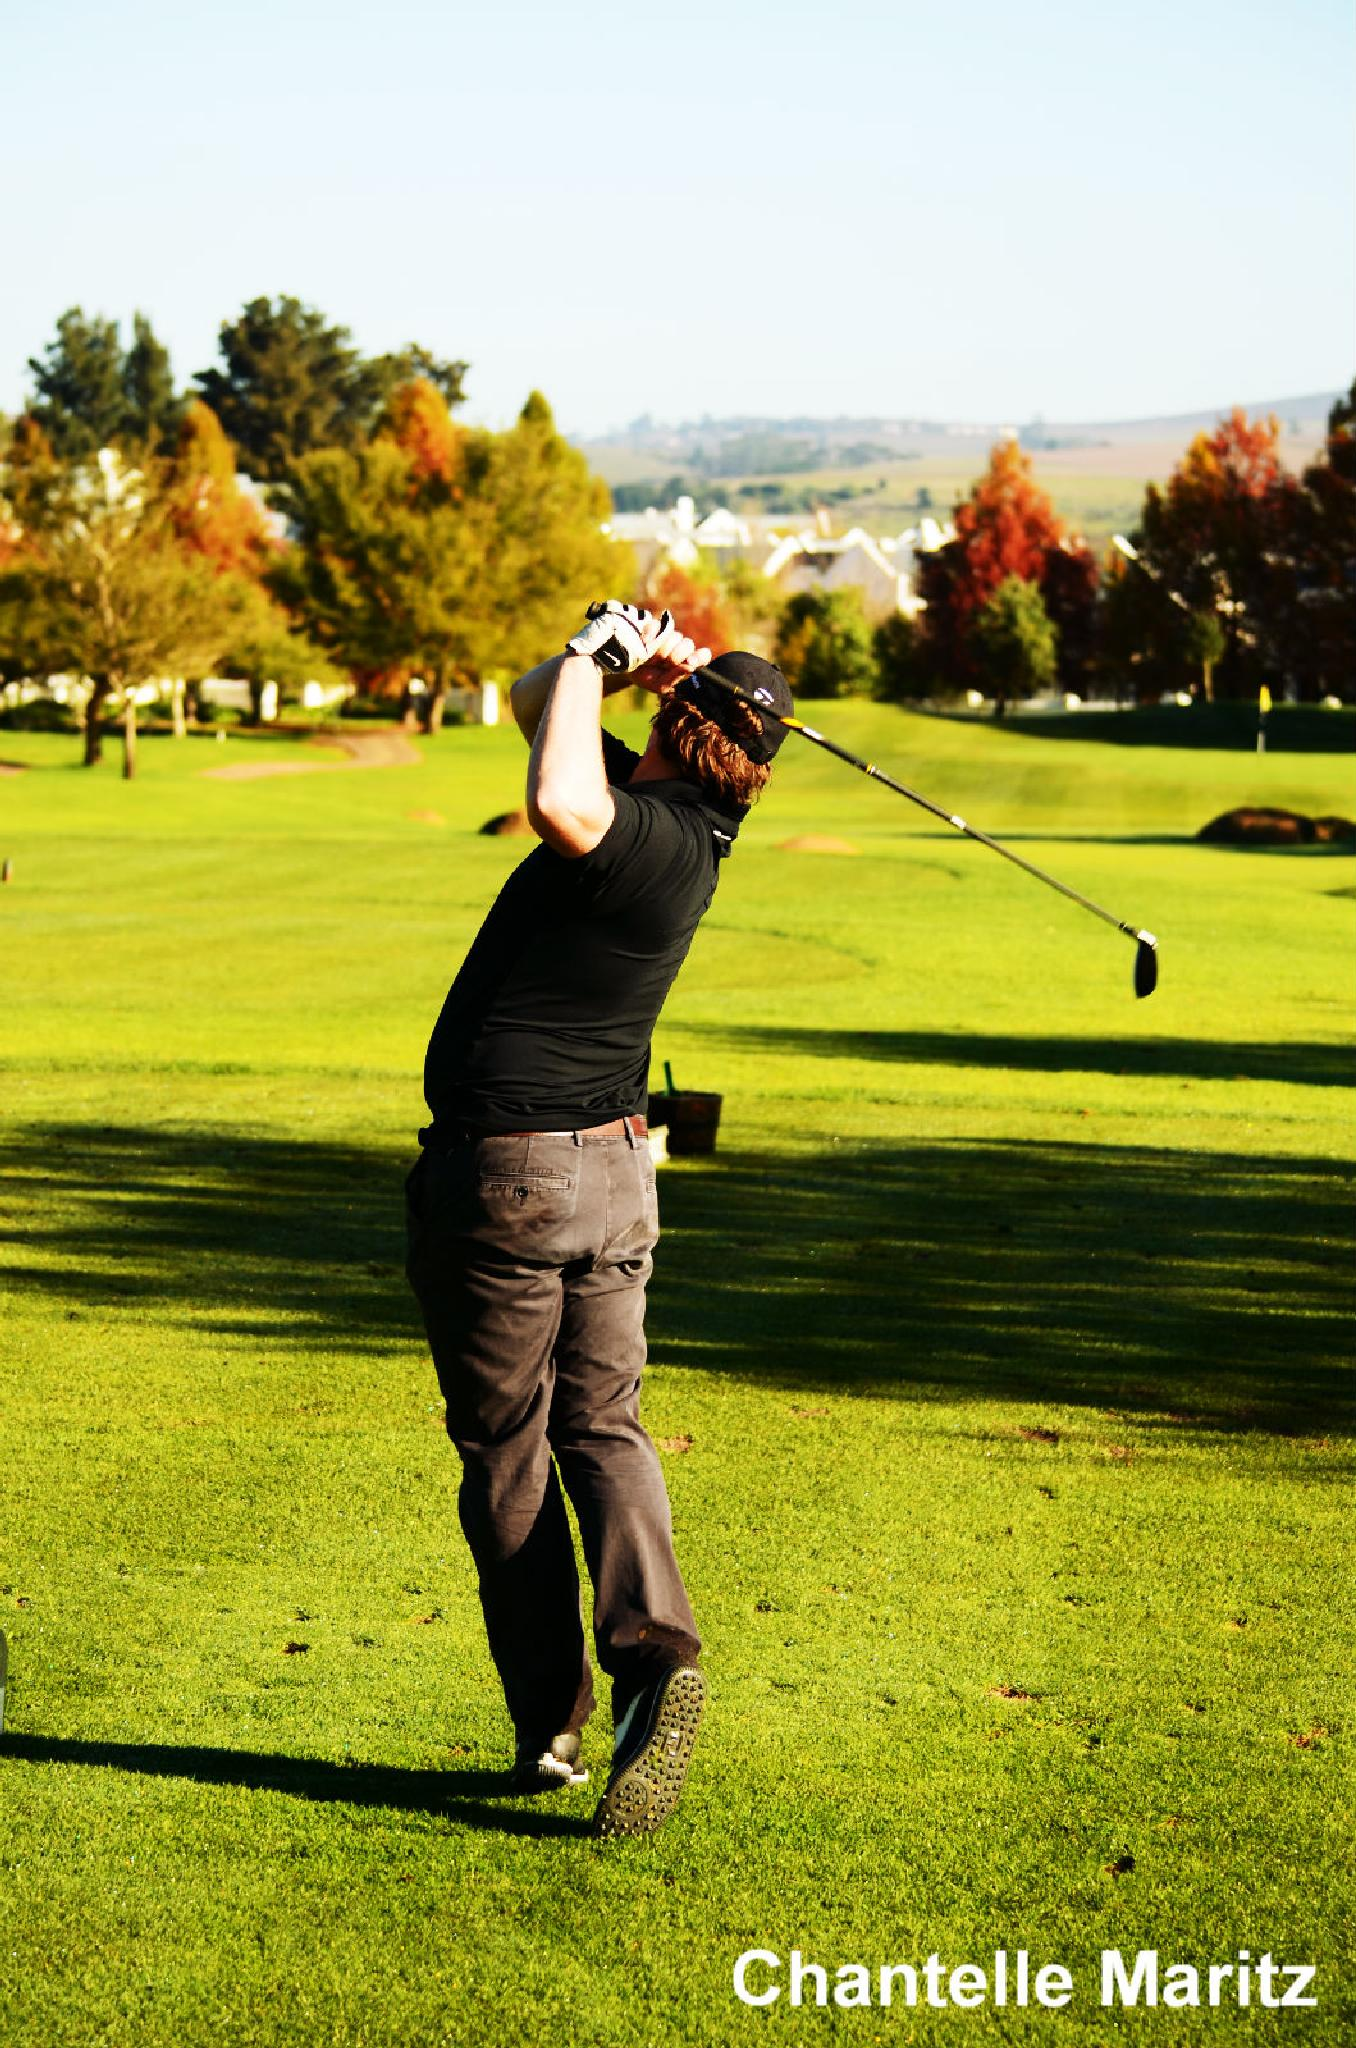 One of the golfers. by Chantelle Maritz